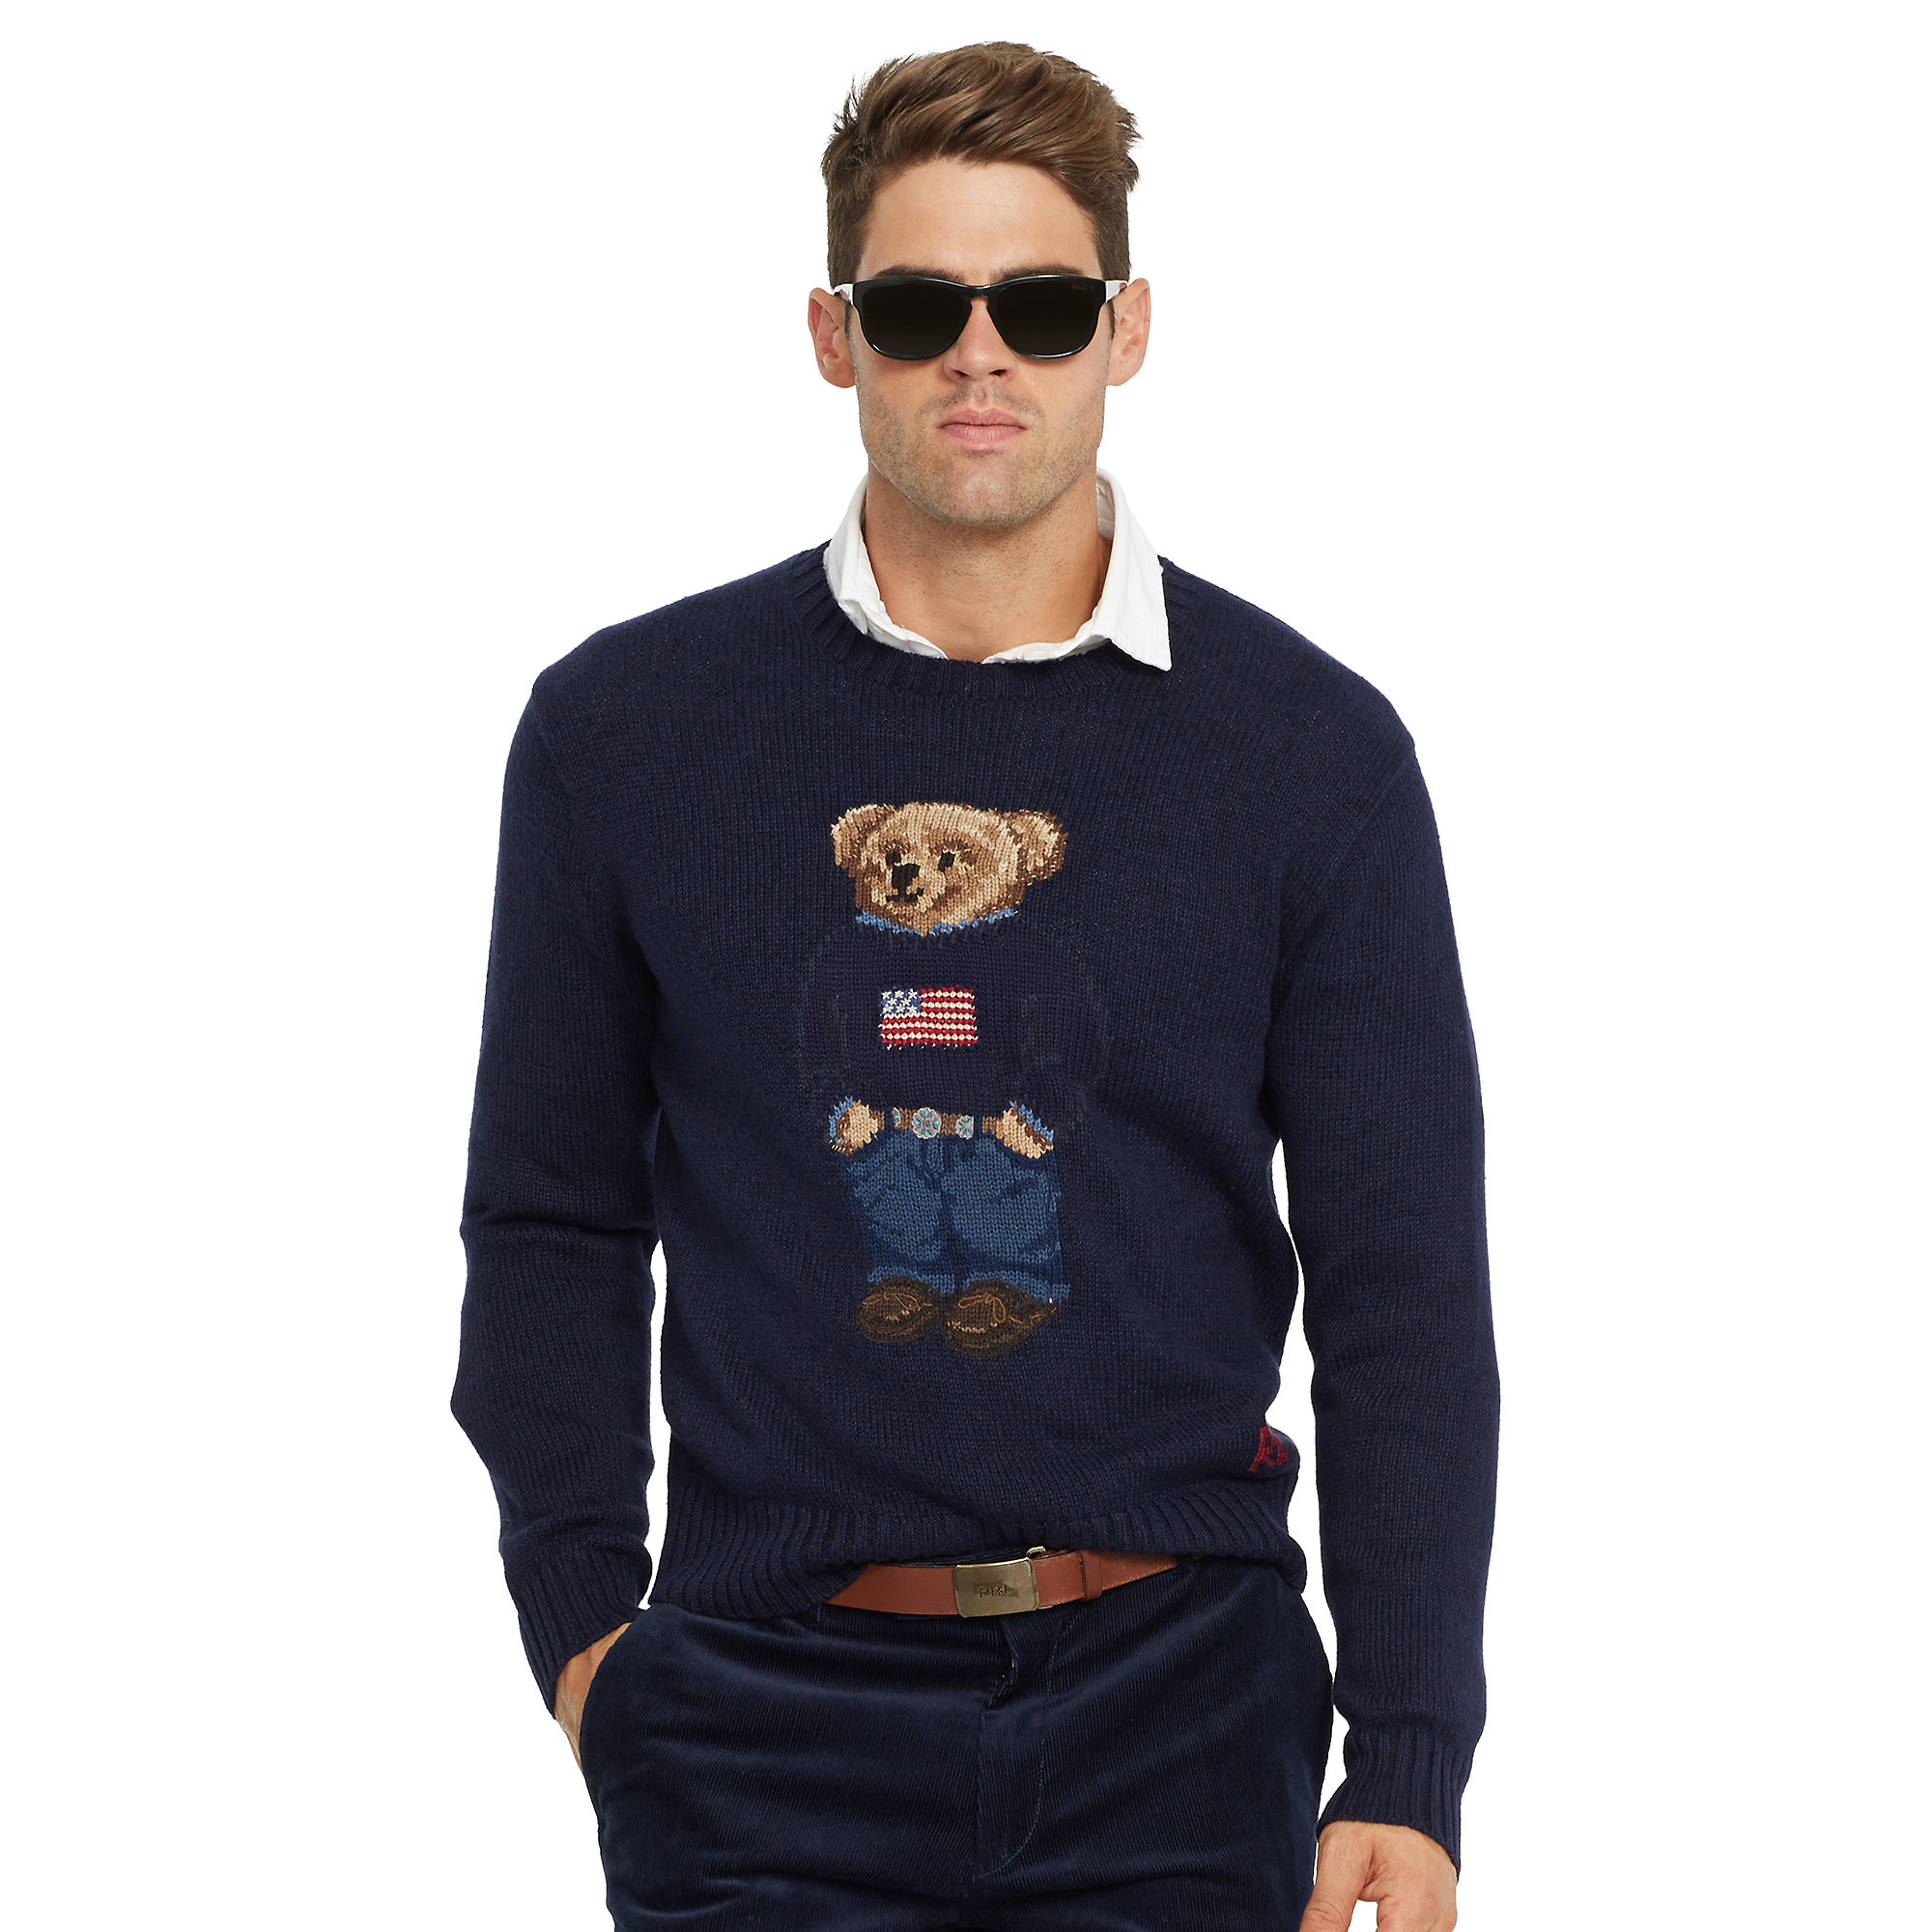 Free shipping BOTH ways on ralph lauren bear sweater, from our vast selection of styles. Fast delivery, and 24/7/ real-person service with a smile. Click or call